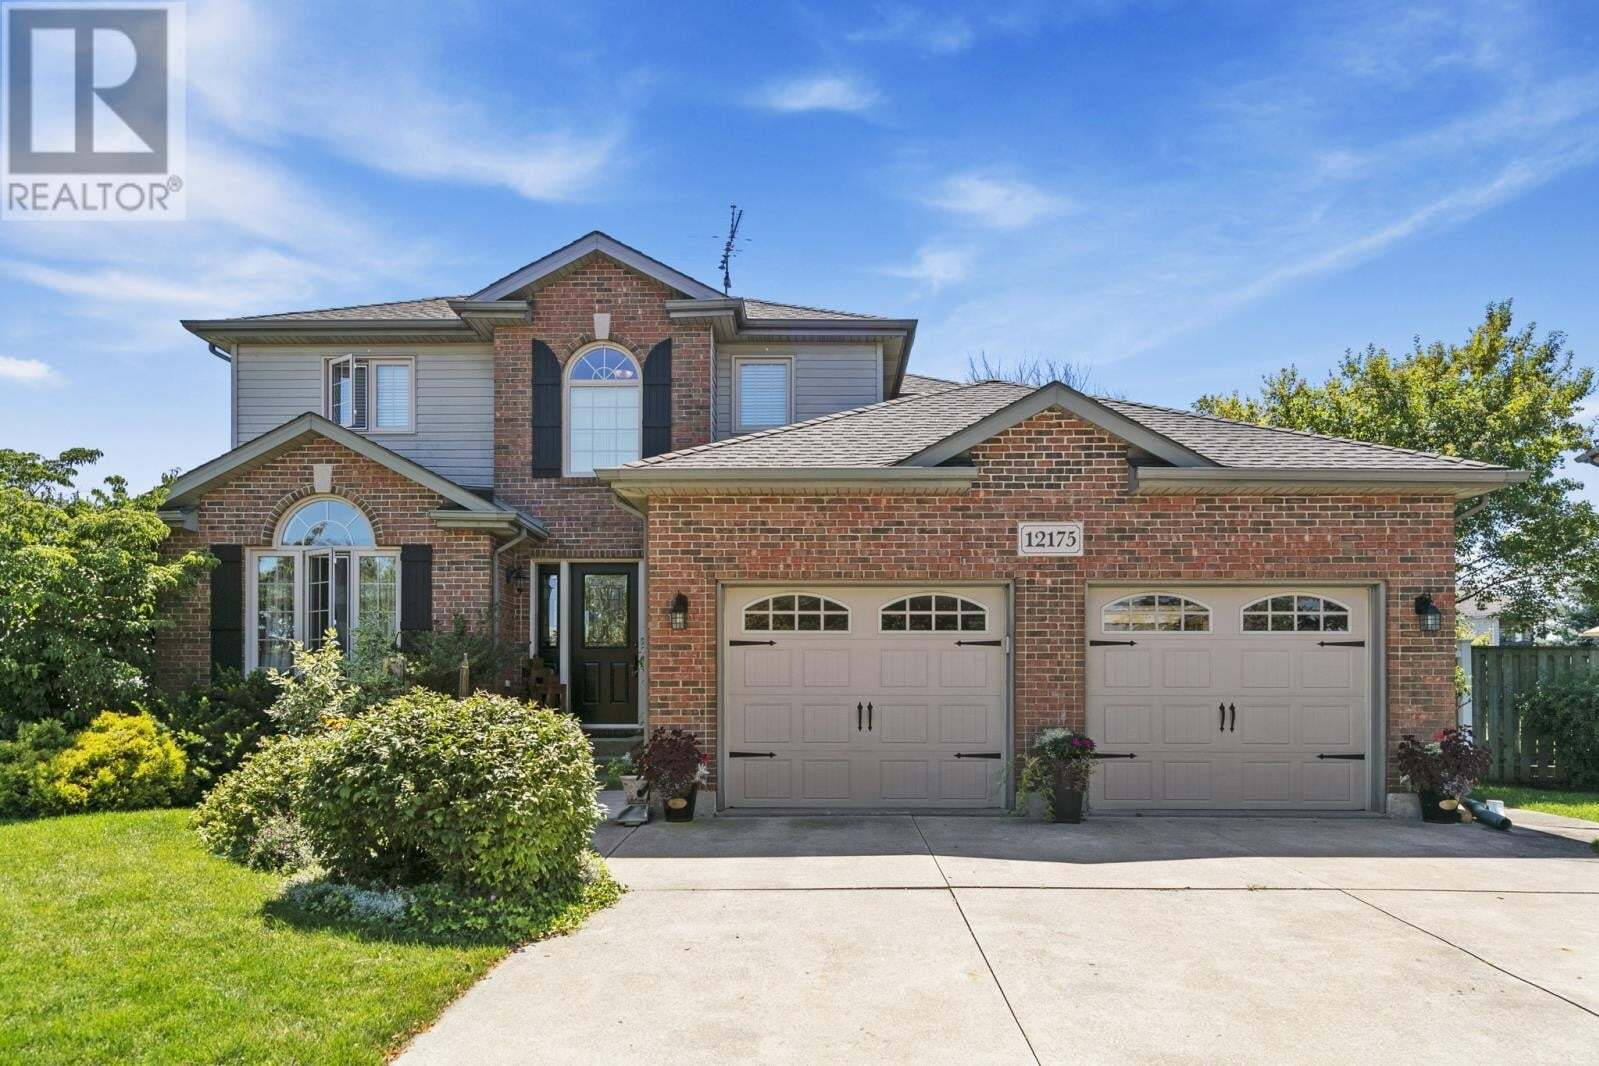 House for sale at 12175 Cranbrook Cres Tecumseh Ontario - MLS: 20009965